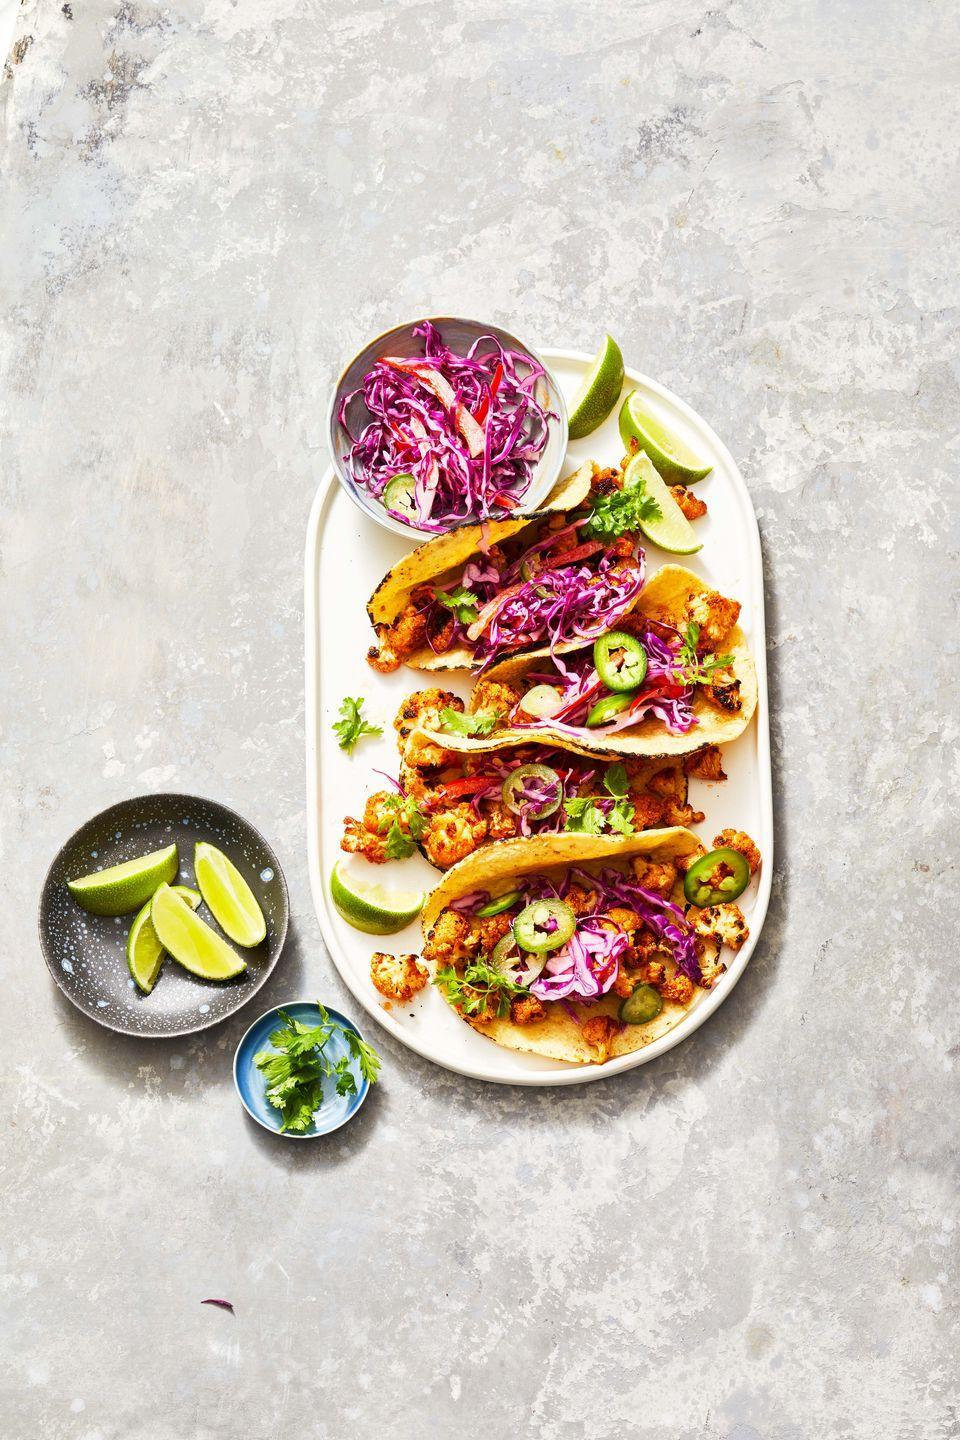 """<p>Cook cauliflower in the air fryer then pile into tacos for a vegetarian feast.</p><p><em><a href=""""https://www.goodhousekeeping.com/food-recipes/a37223730/cauliflower-tacos-recipe/"""" rel=""""nofollow noopener"""" target=""""_blank"""" data-ylk=""""slk:Get the recipe for Roasted Cauliflower Tacos »"""" class=""""link rapid-noclick-resp"""">Get the recipe for Roasted Cauliflower Tacos »</a></em></p><p><strong>RELATED: </strong><a href=""""https://www.goodhousekeeping.com/food-recipes/healthy/g908/vegetarian-recipes/"""" rel=""""nofollow noopener"""" target=""""_blank"""" data-ylk=""""slk:50 Easy Vegetarian Recipes for the Whole Family"""" class=""""link rapid-noclick-resp"""">50 Easy Vegetarian Recipes for the Whole Family</a><br></p>"""